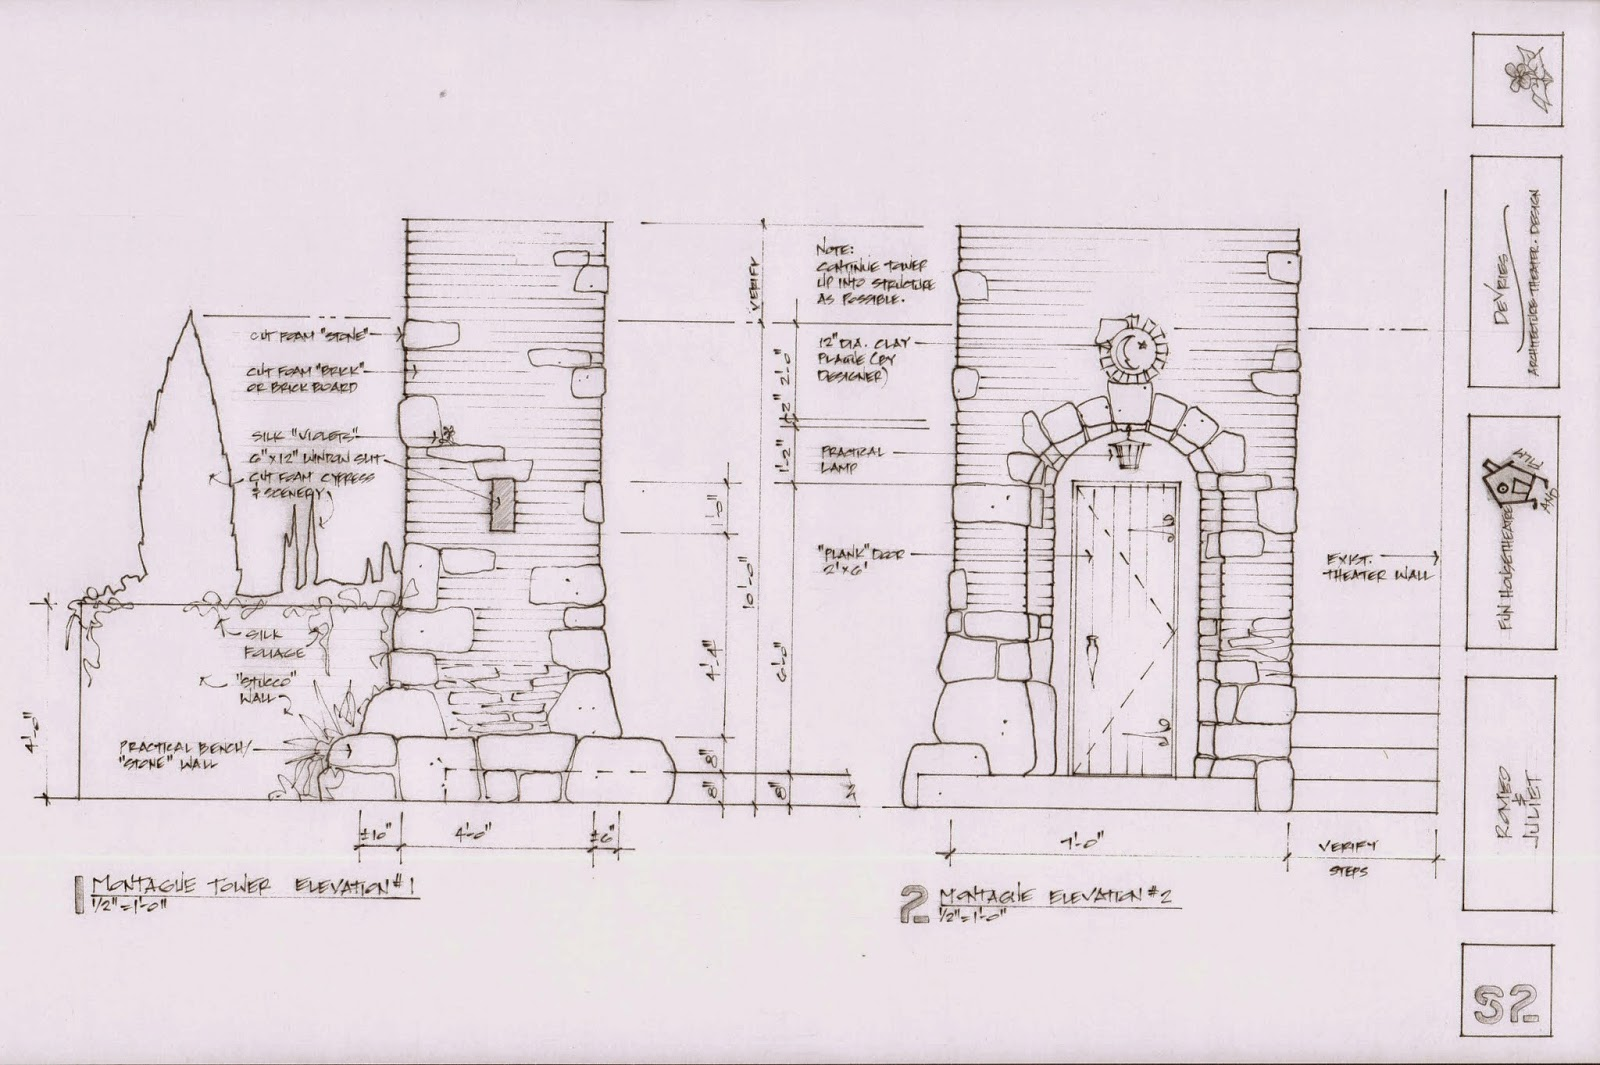 Design Diary: R & J Construction Drawings